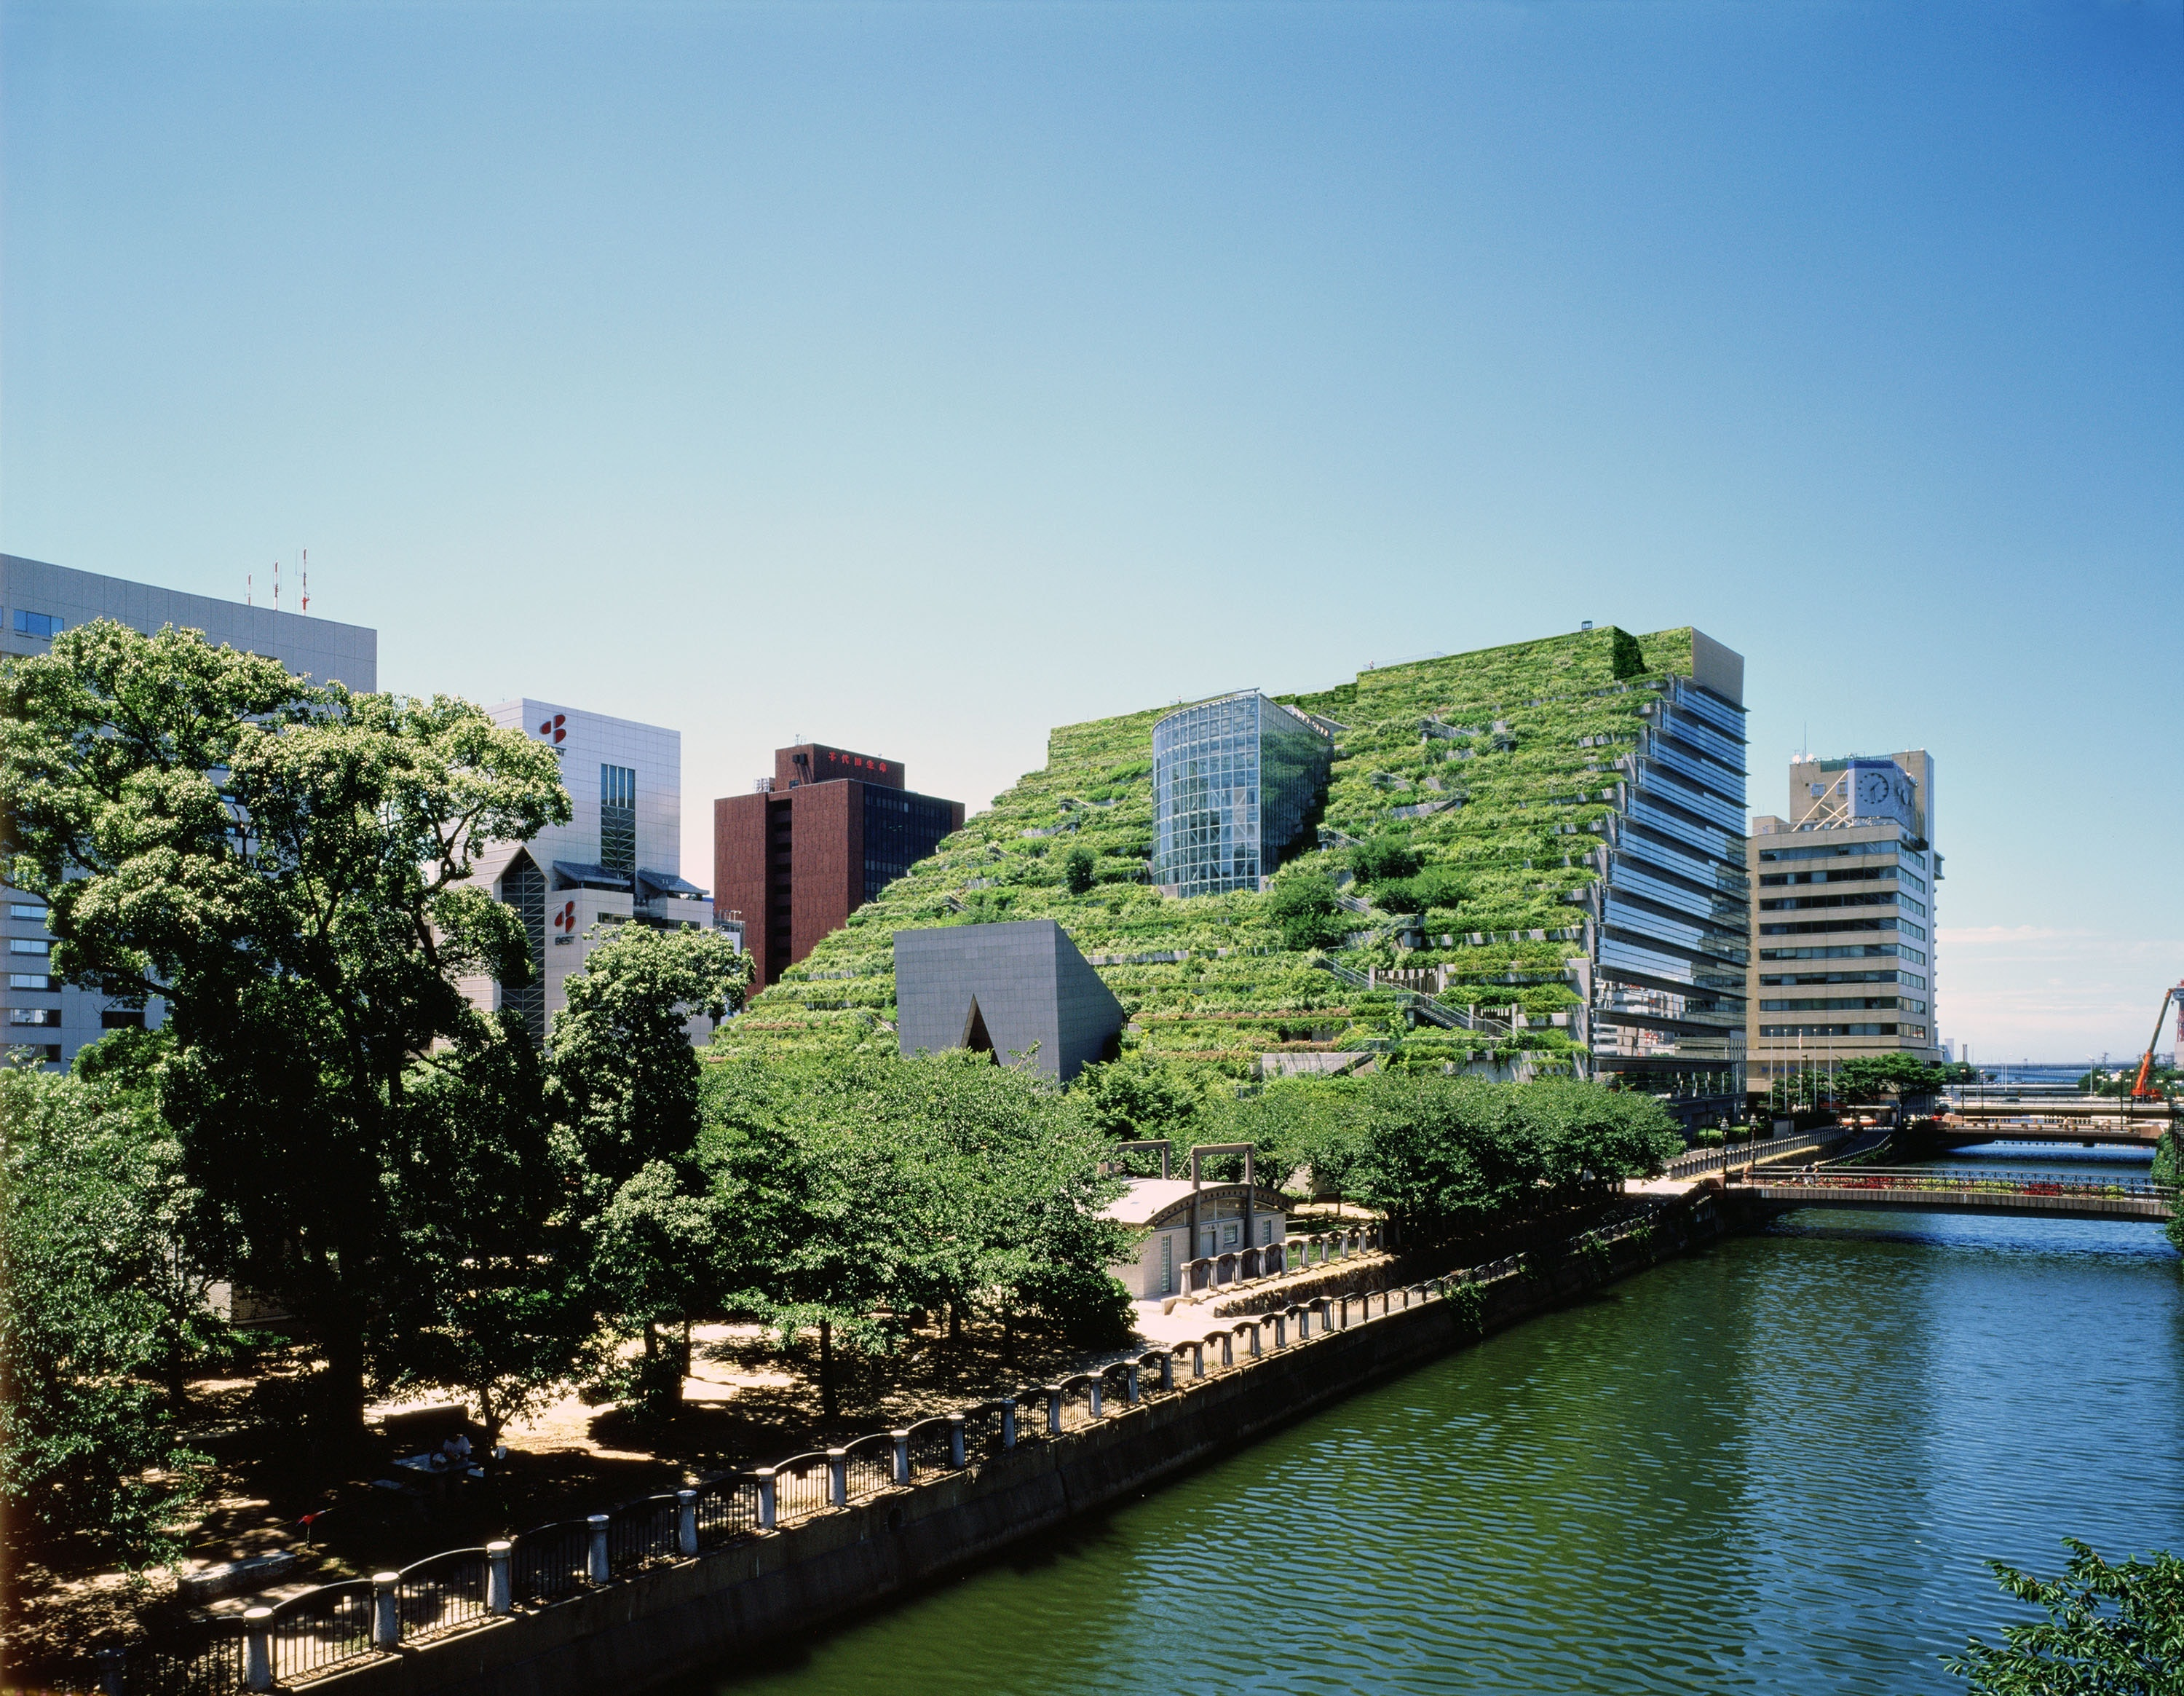 ACROS Fukuoka Prefectural International Hall has green space and hosts concerts and events.